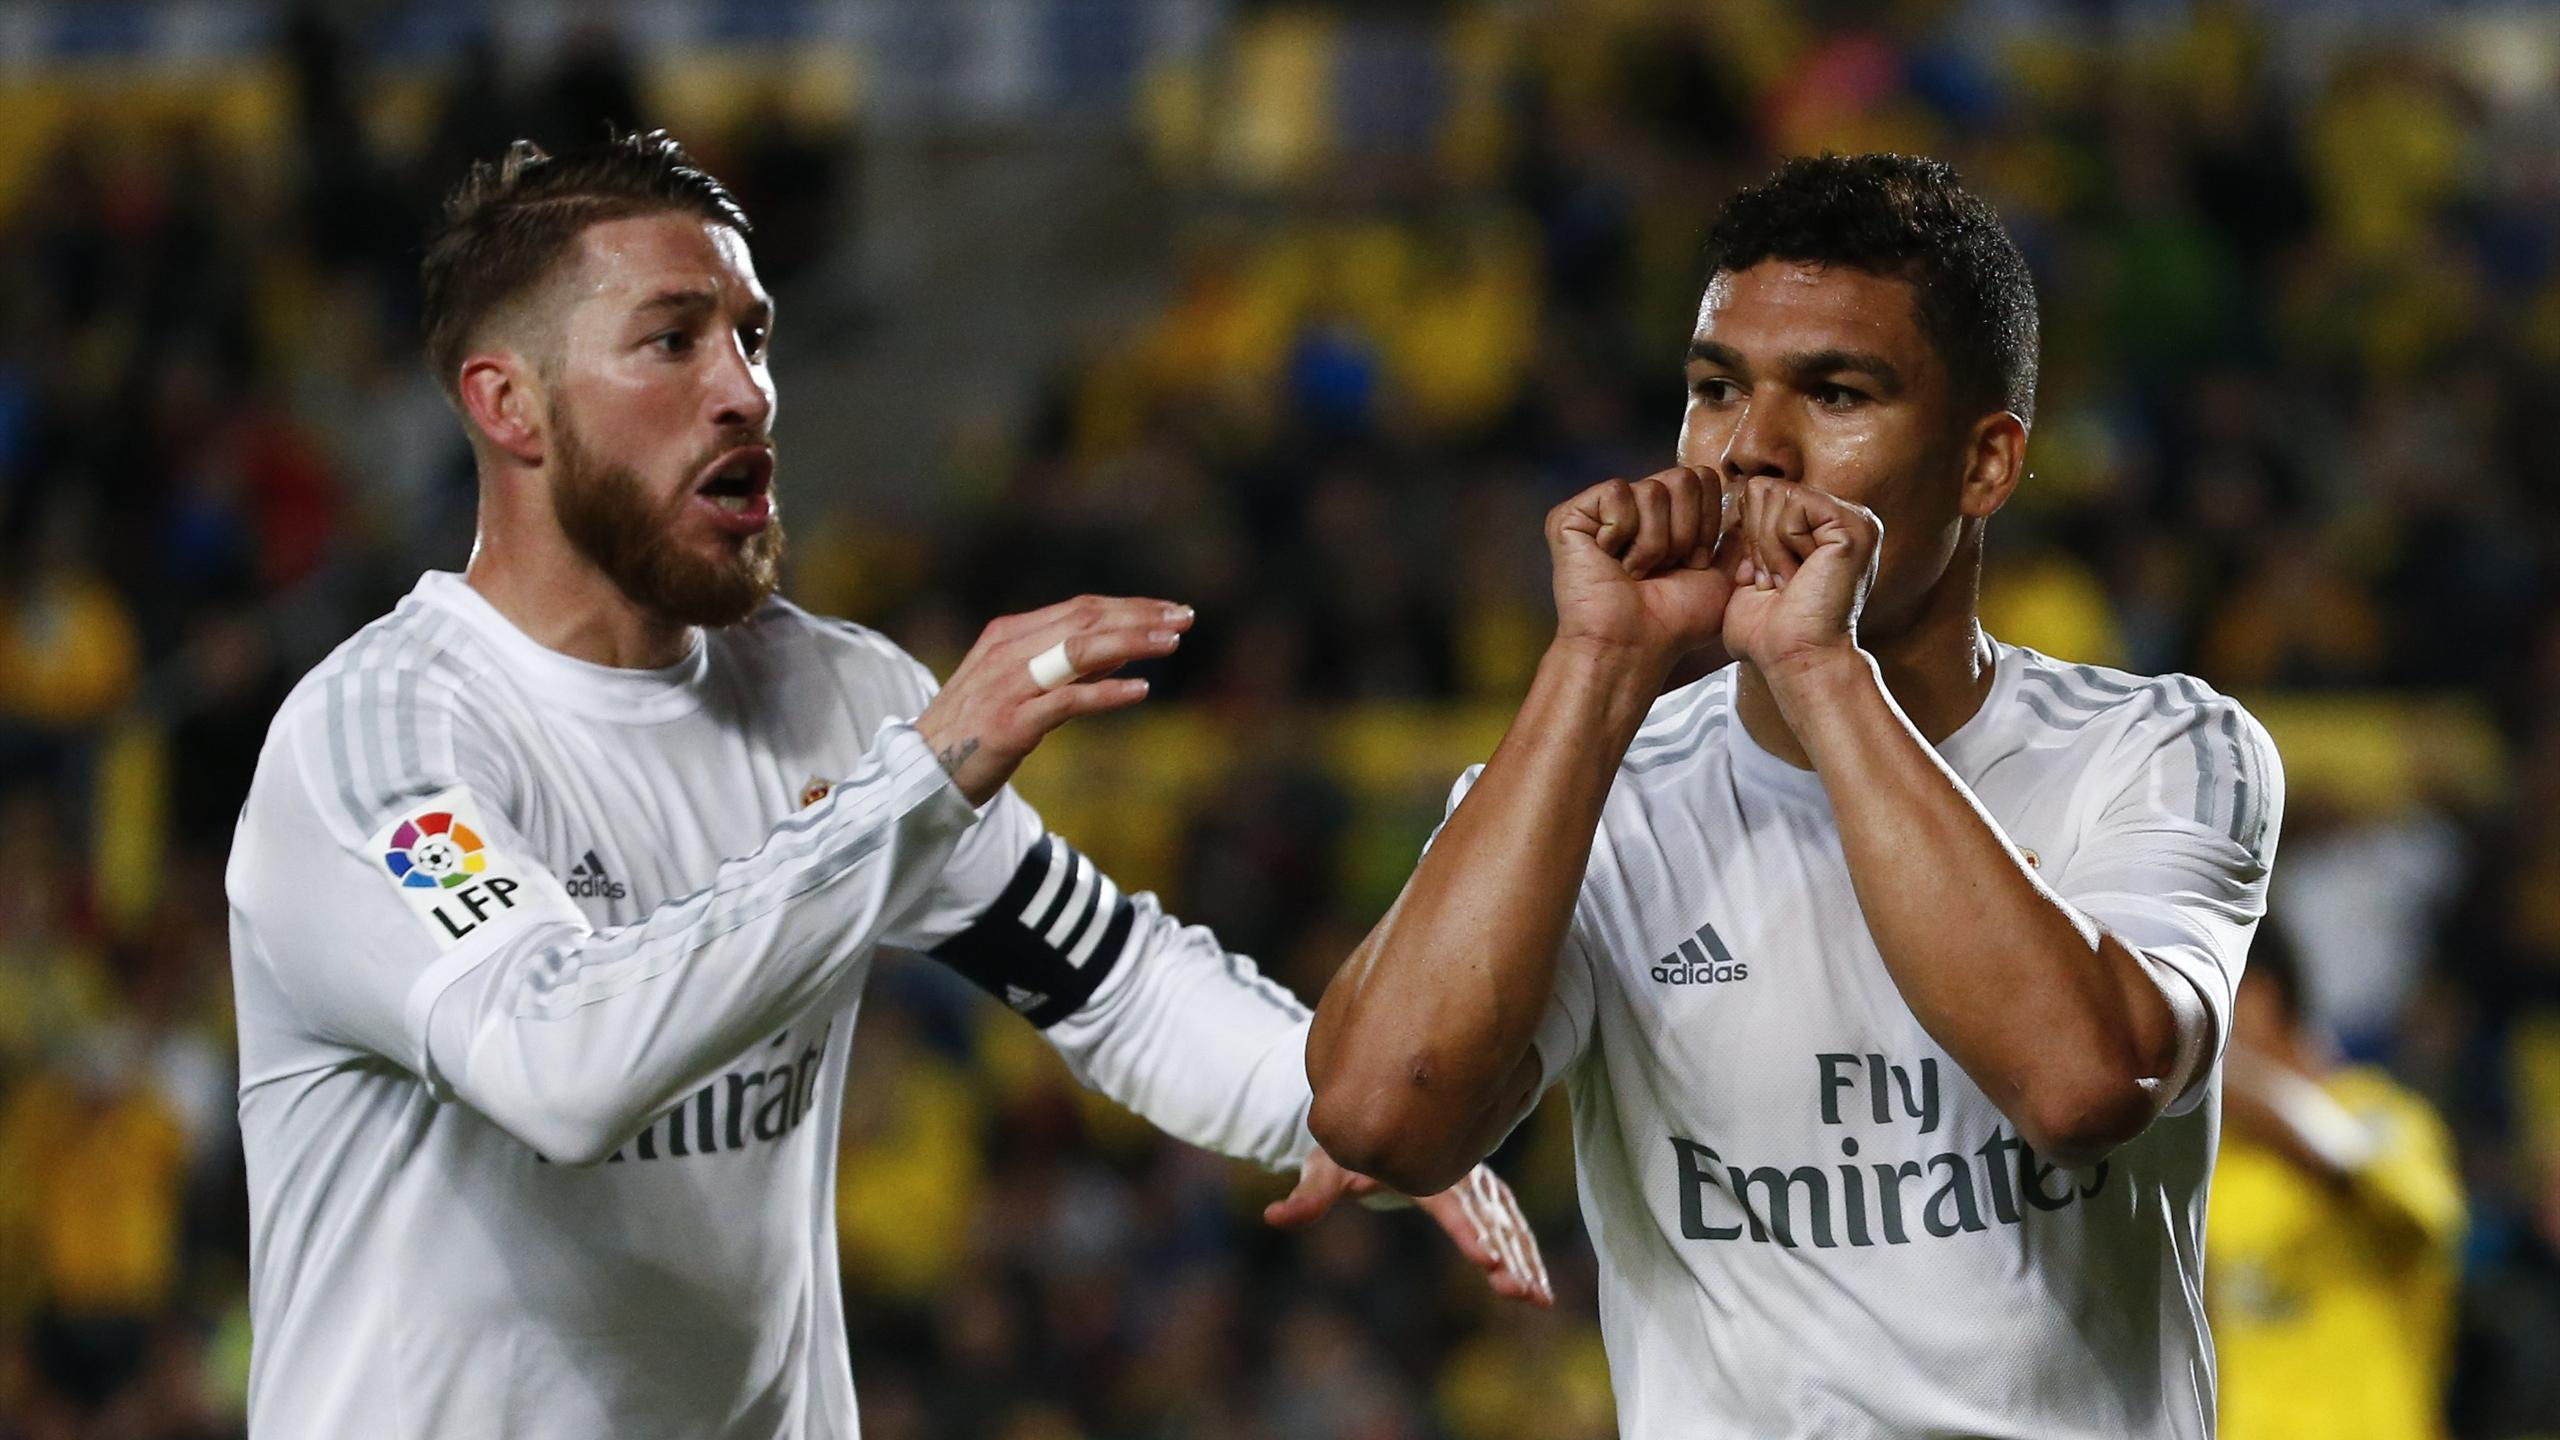 Real Madrid's Casemiro celebrates after scoring a goal with team mate Sergio Ramos